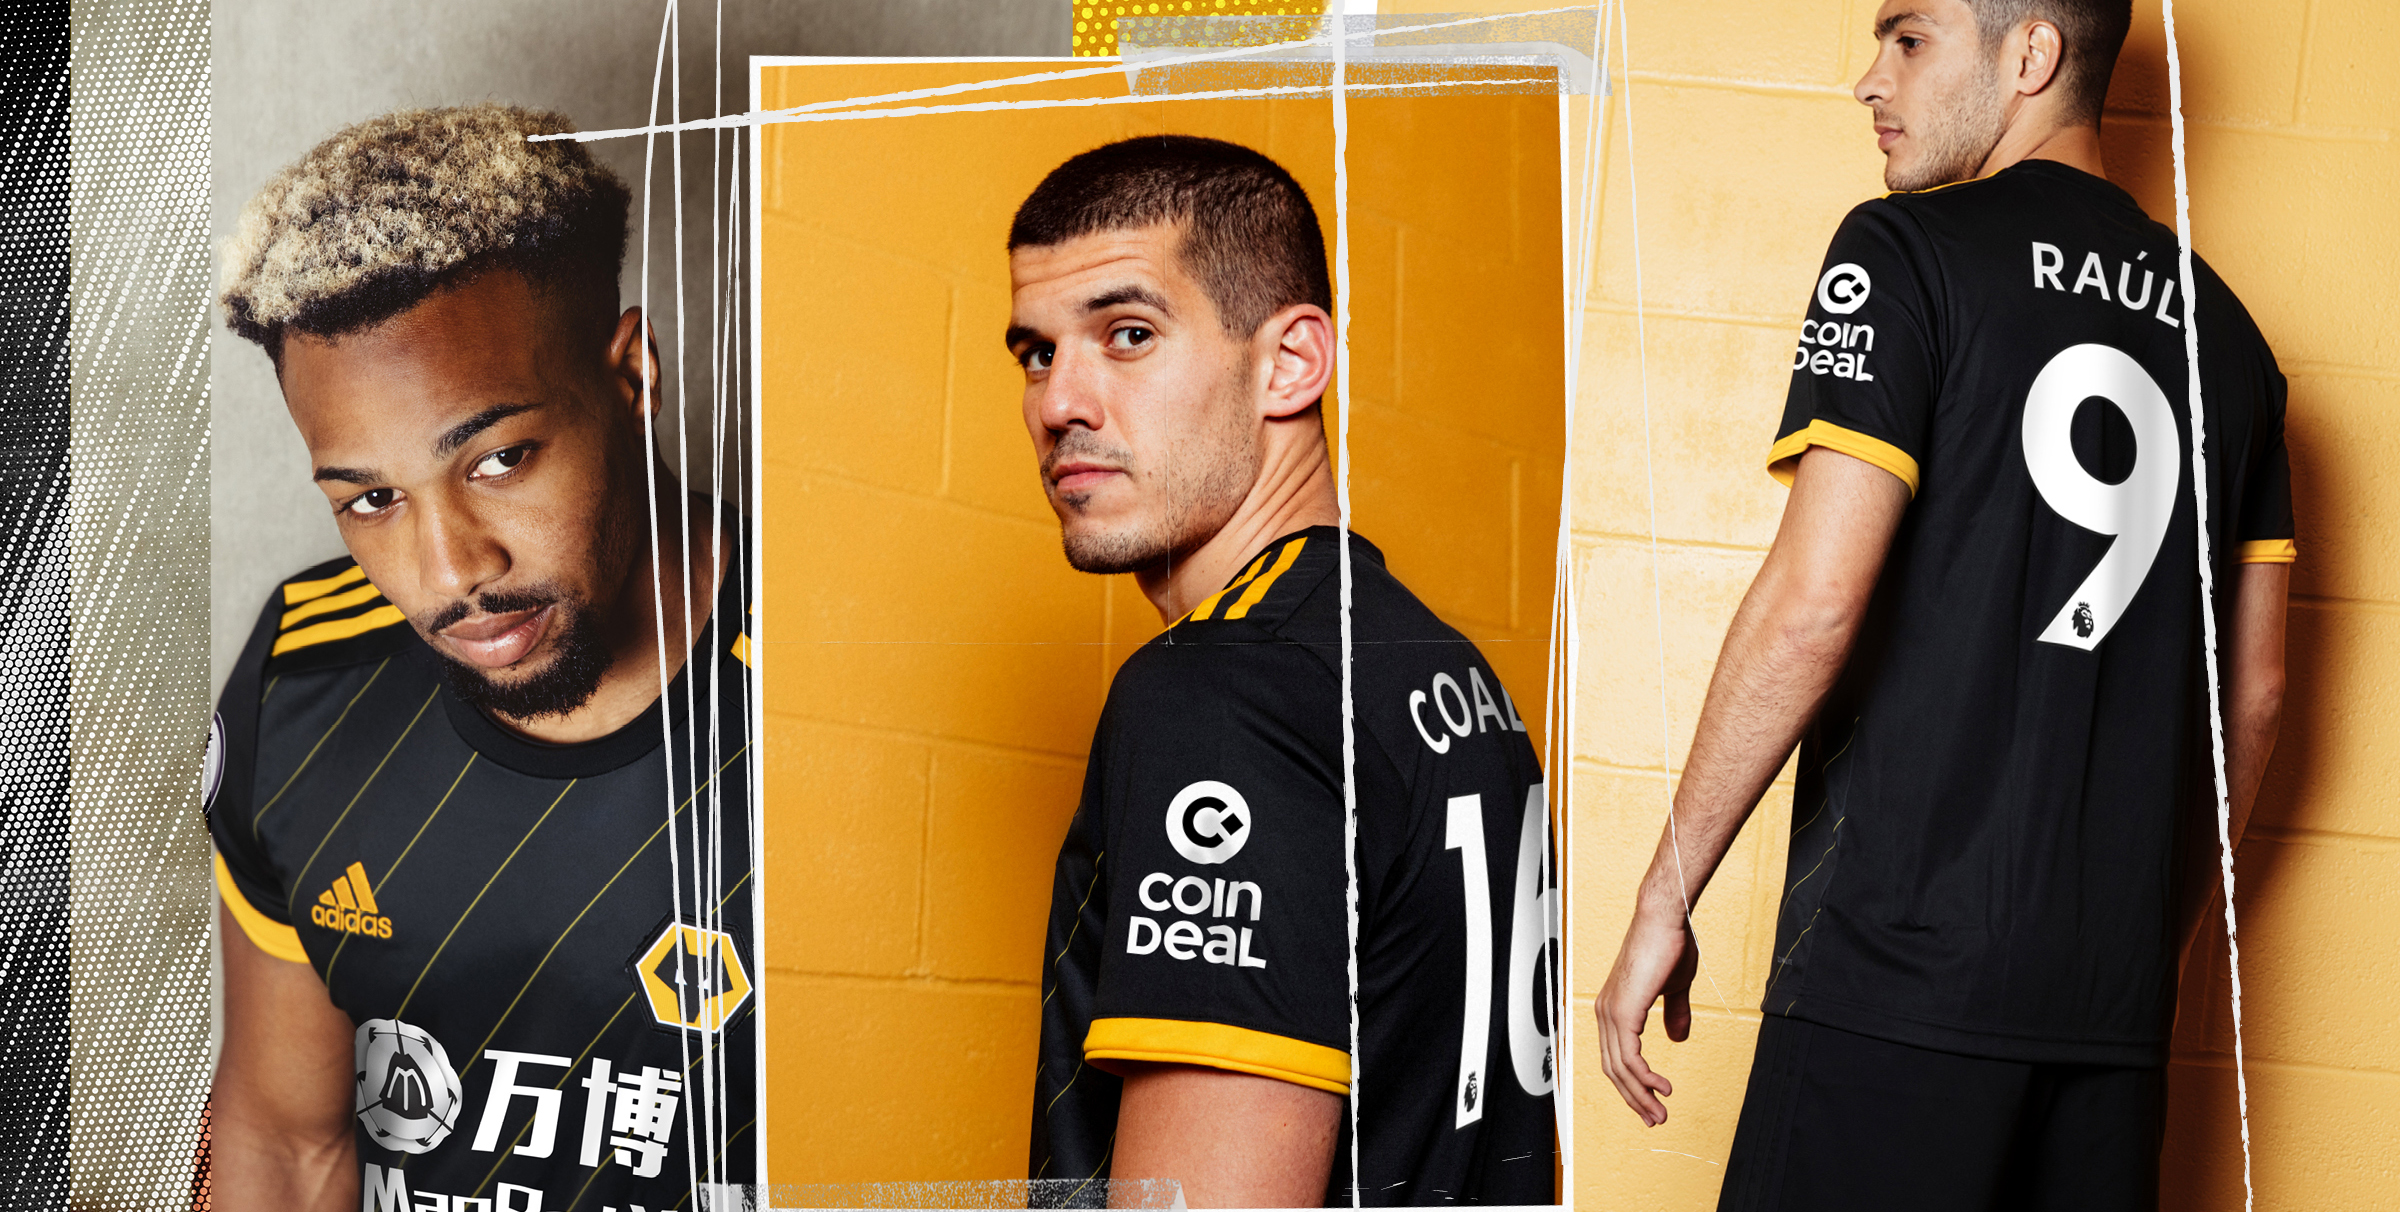 Wolves 2019/20 kit launch